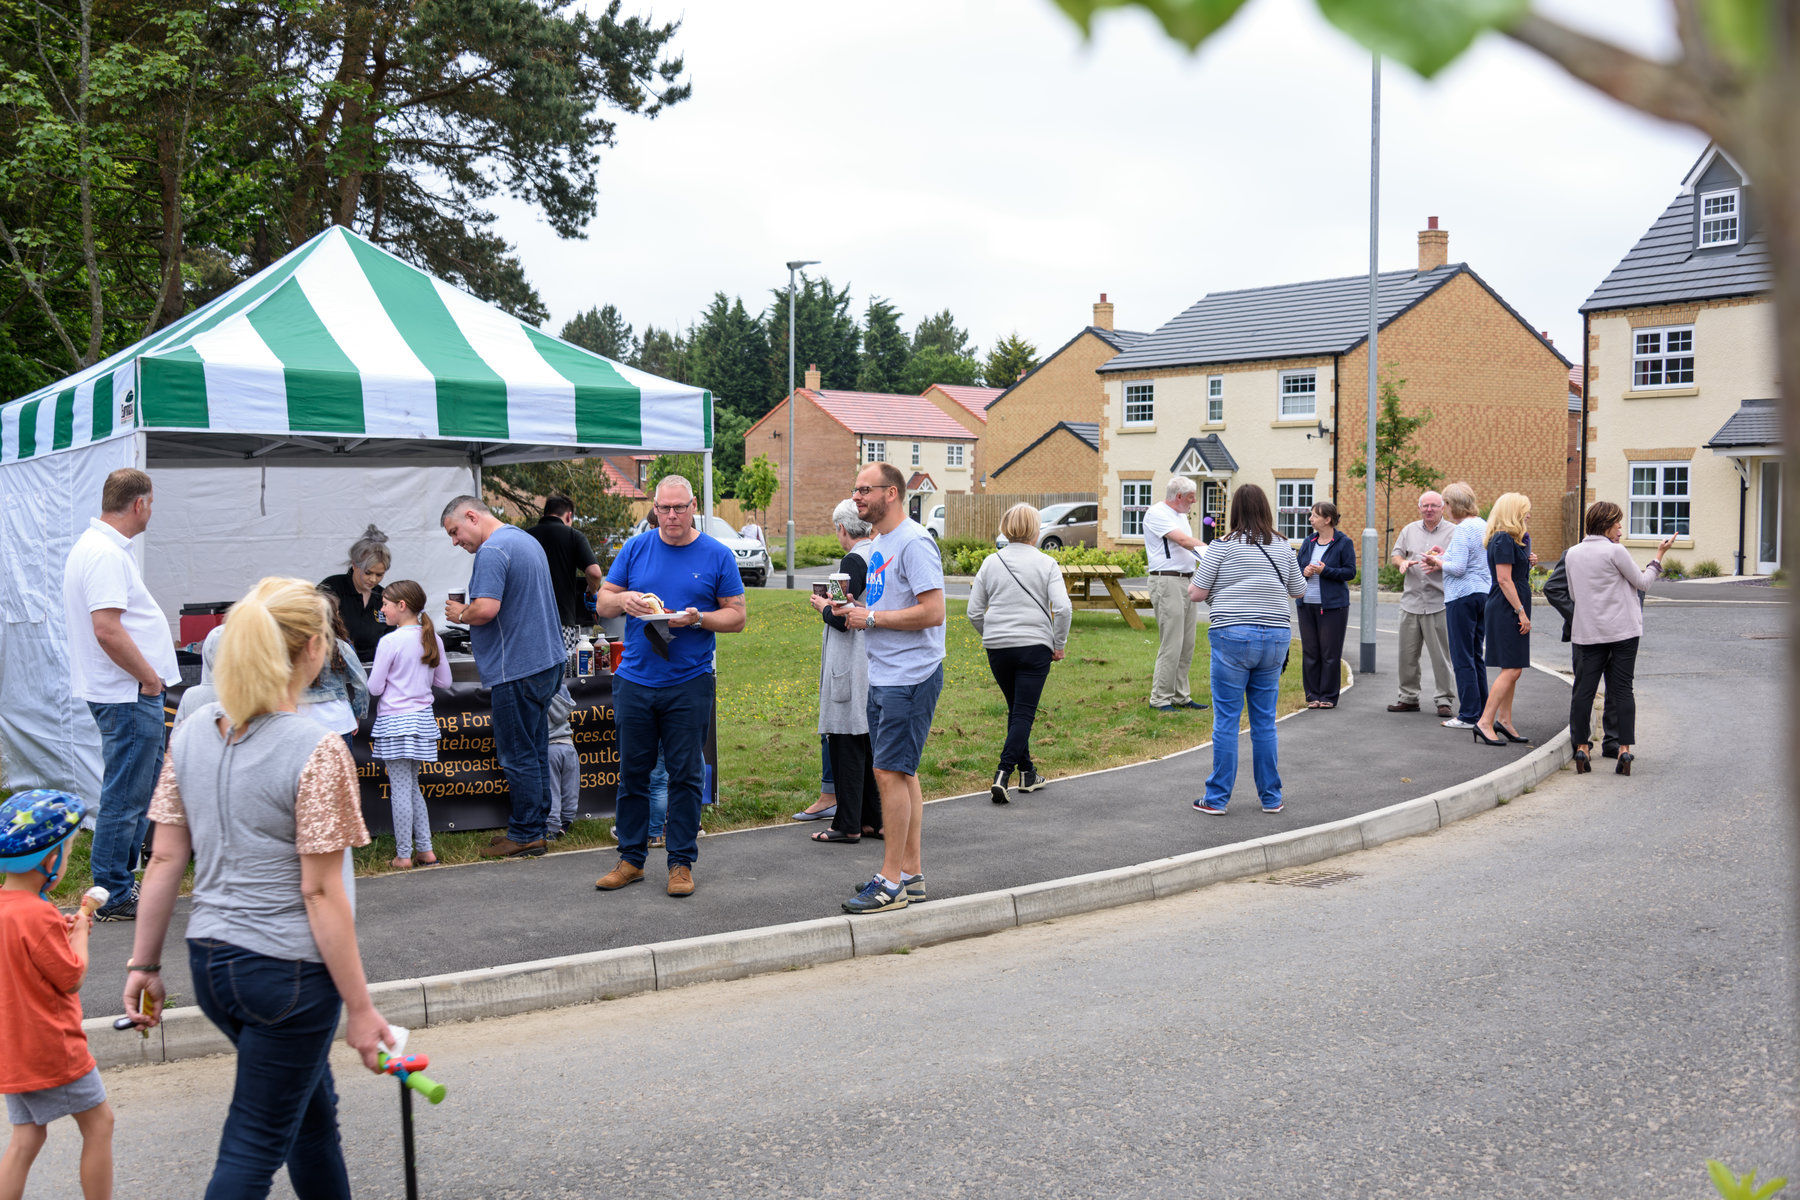 rsz_os_street_party_st_andrews_gdns-1012